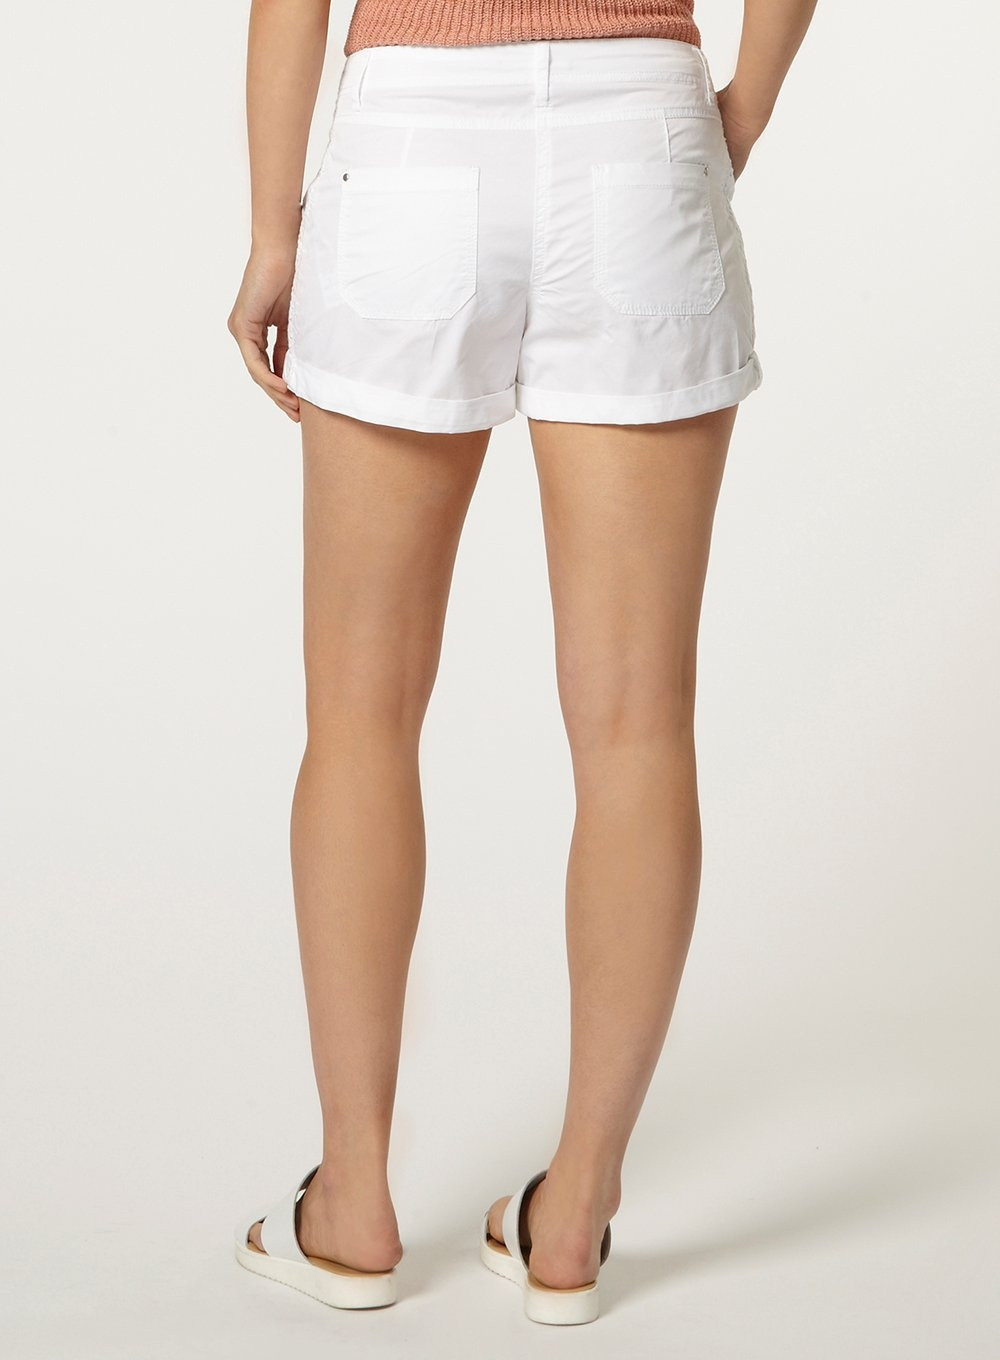 white crochet side trim shorts bi=280&ps=20